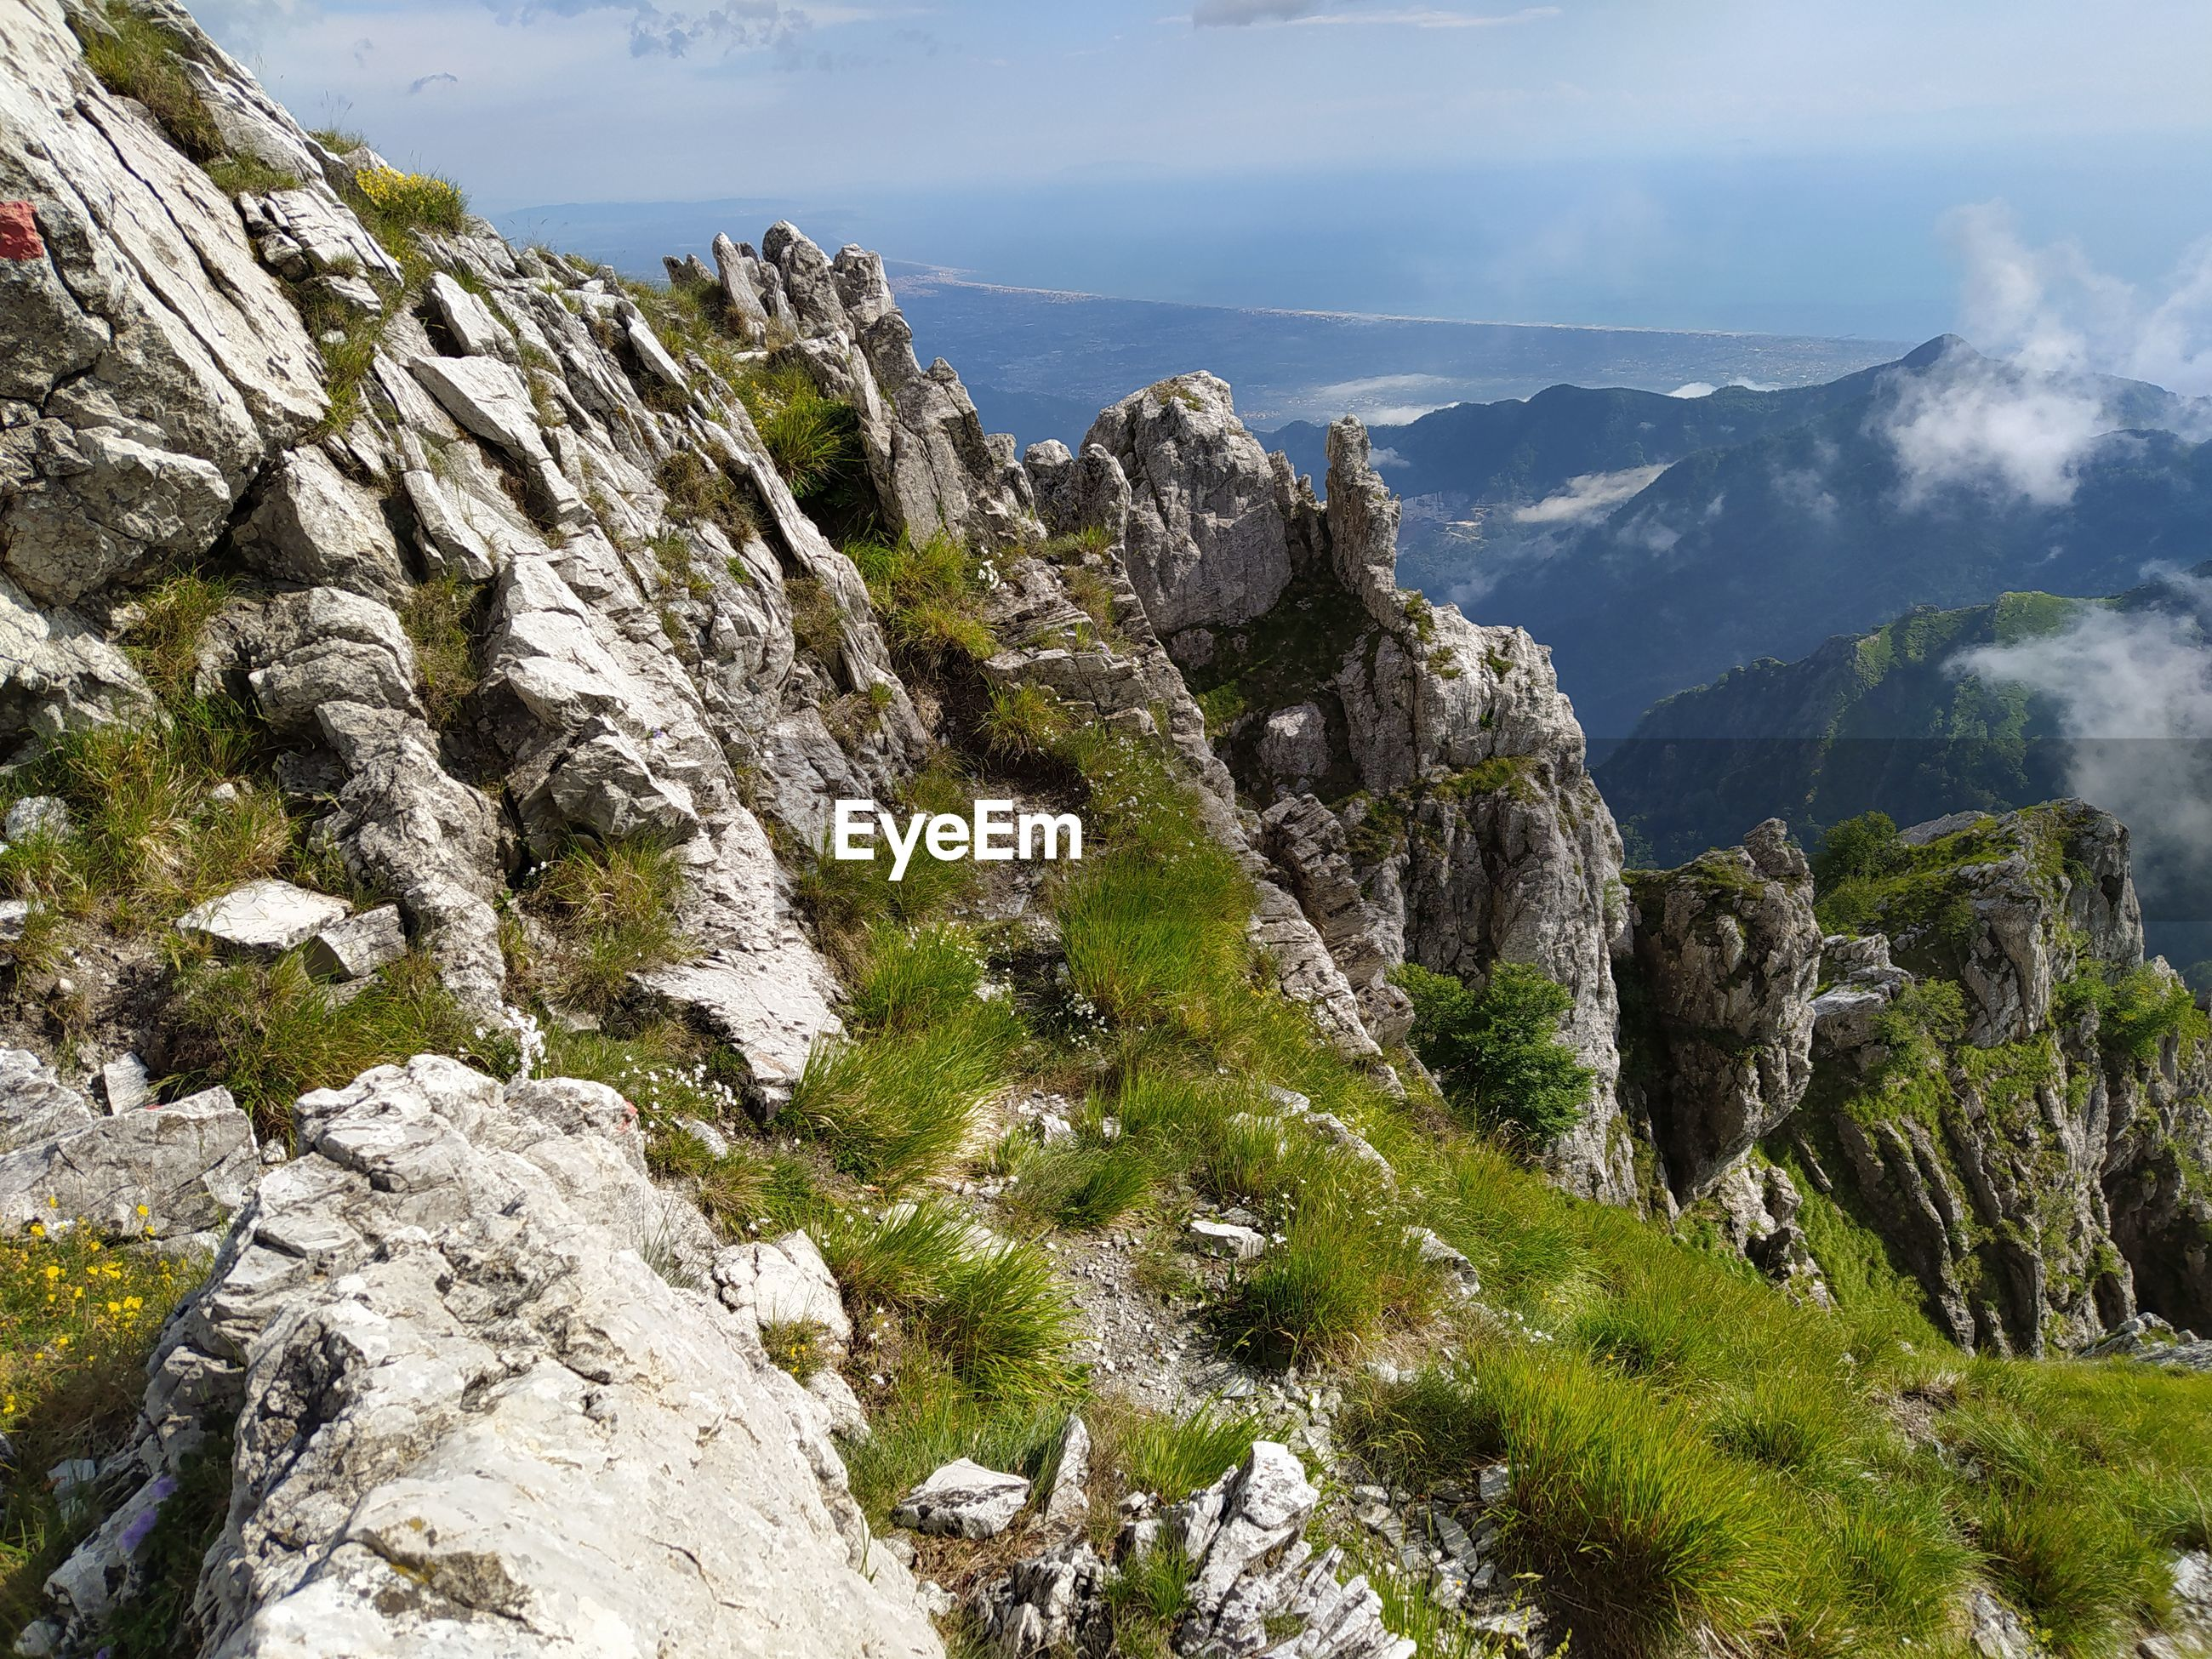 Panoramic viewpoint in the nature of the woods and mountains of the apuan alps in apennines